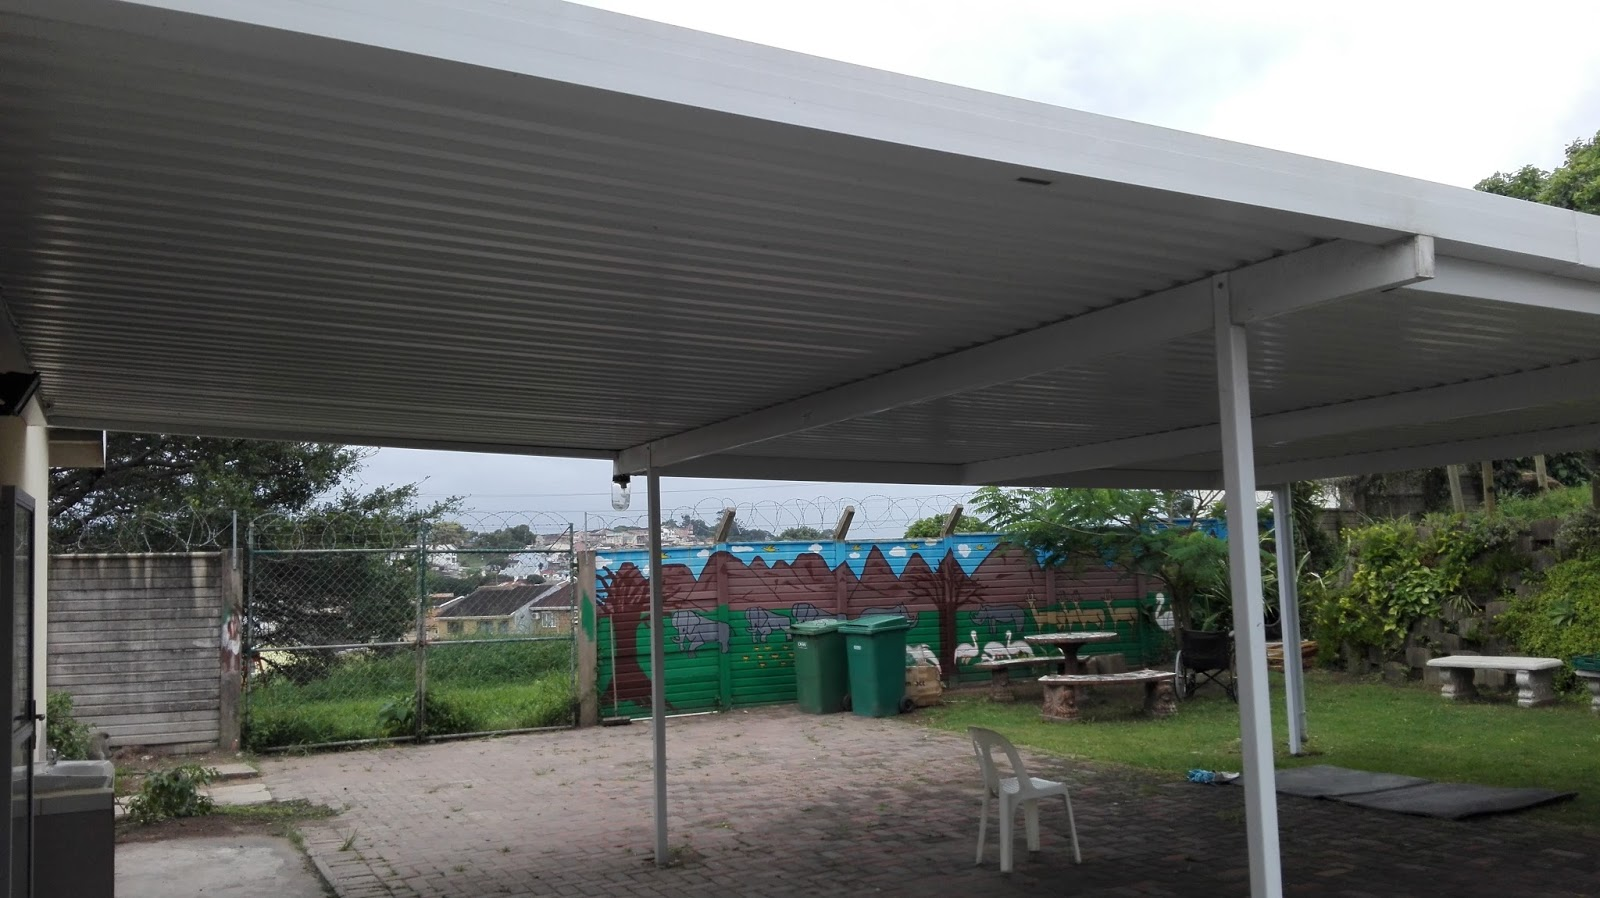 New carport at Cheshire Homes Durban donated by Hollywoodbets Pelican Branch